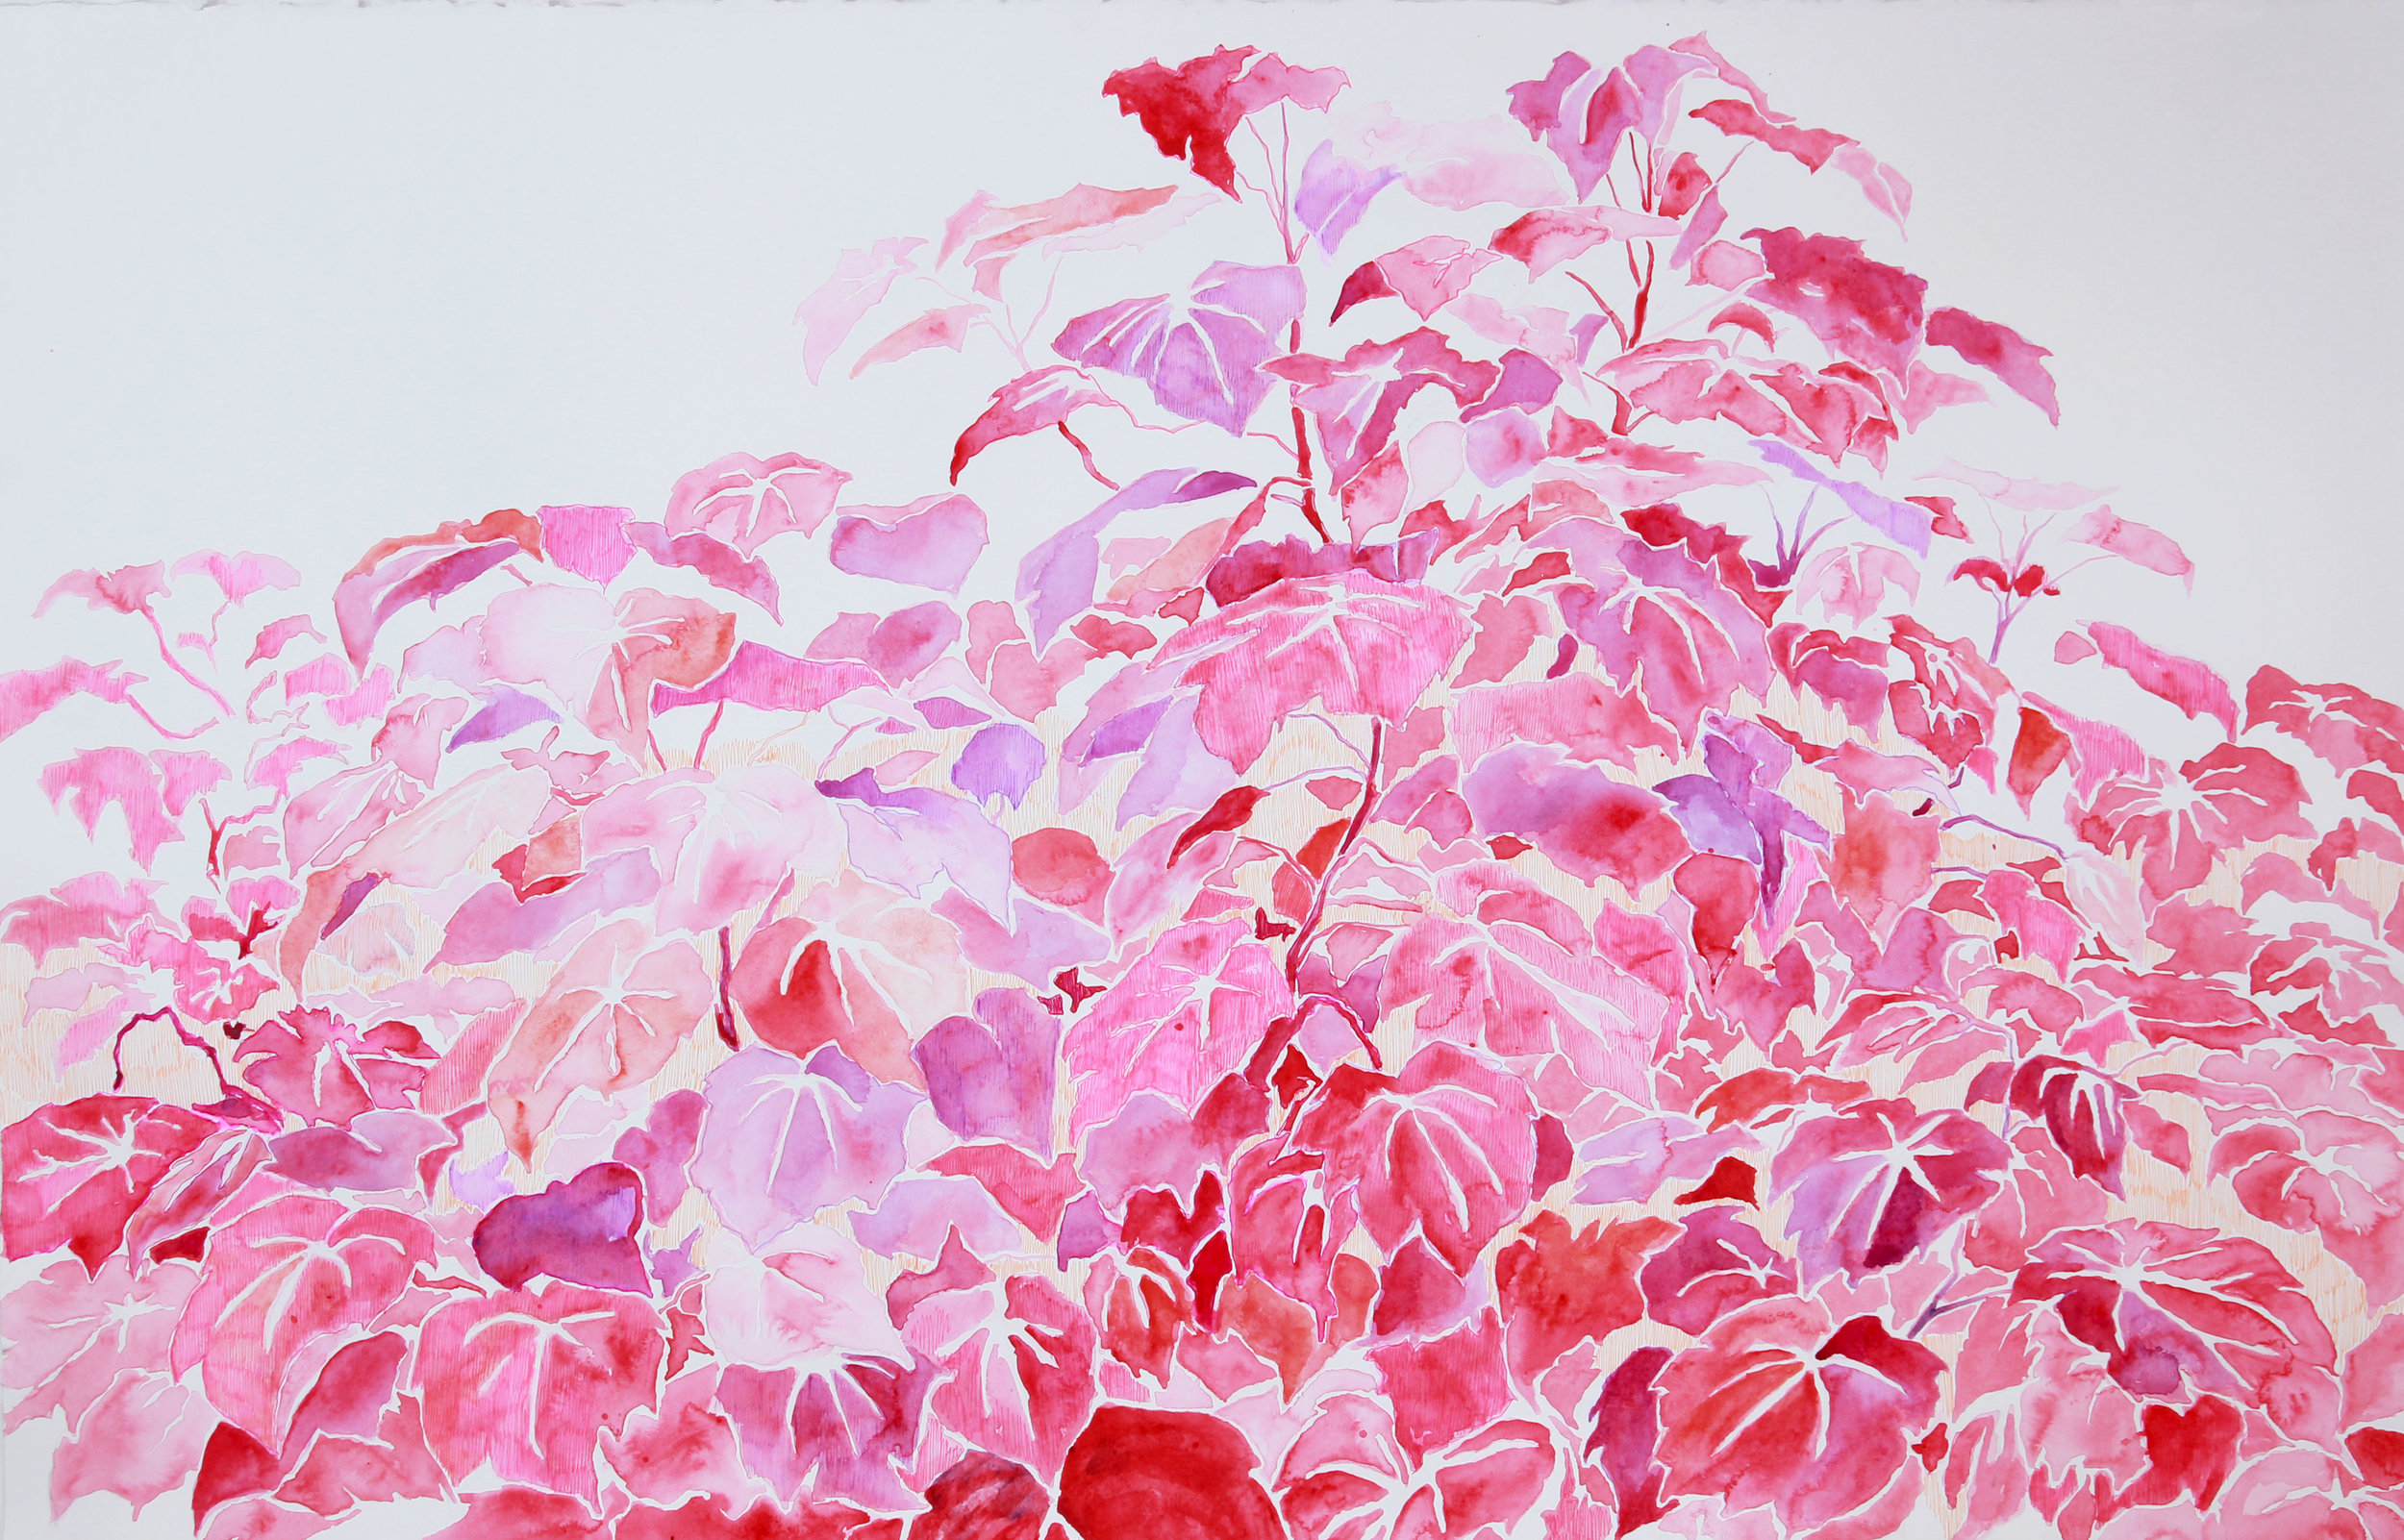 untitled (ivy in reds)